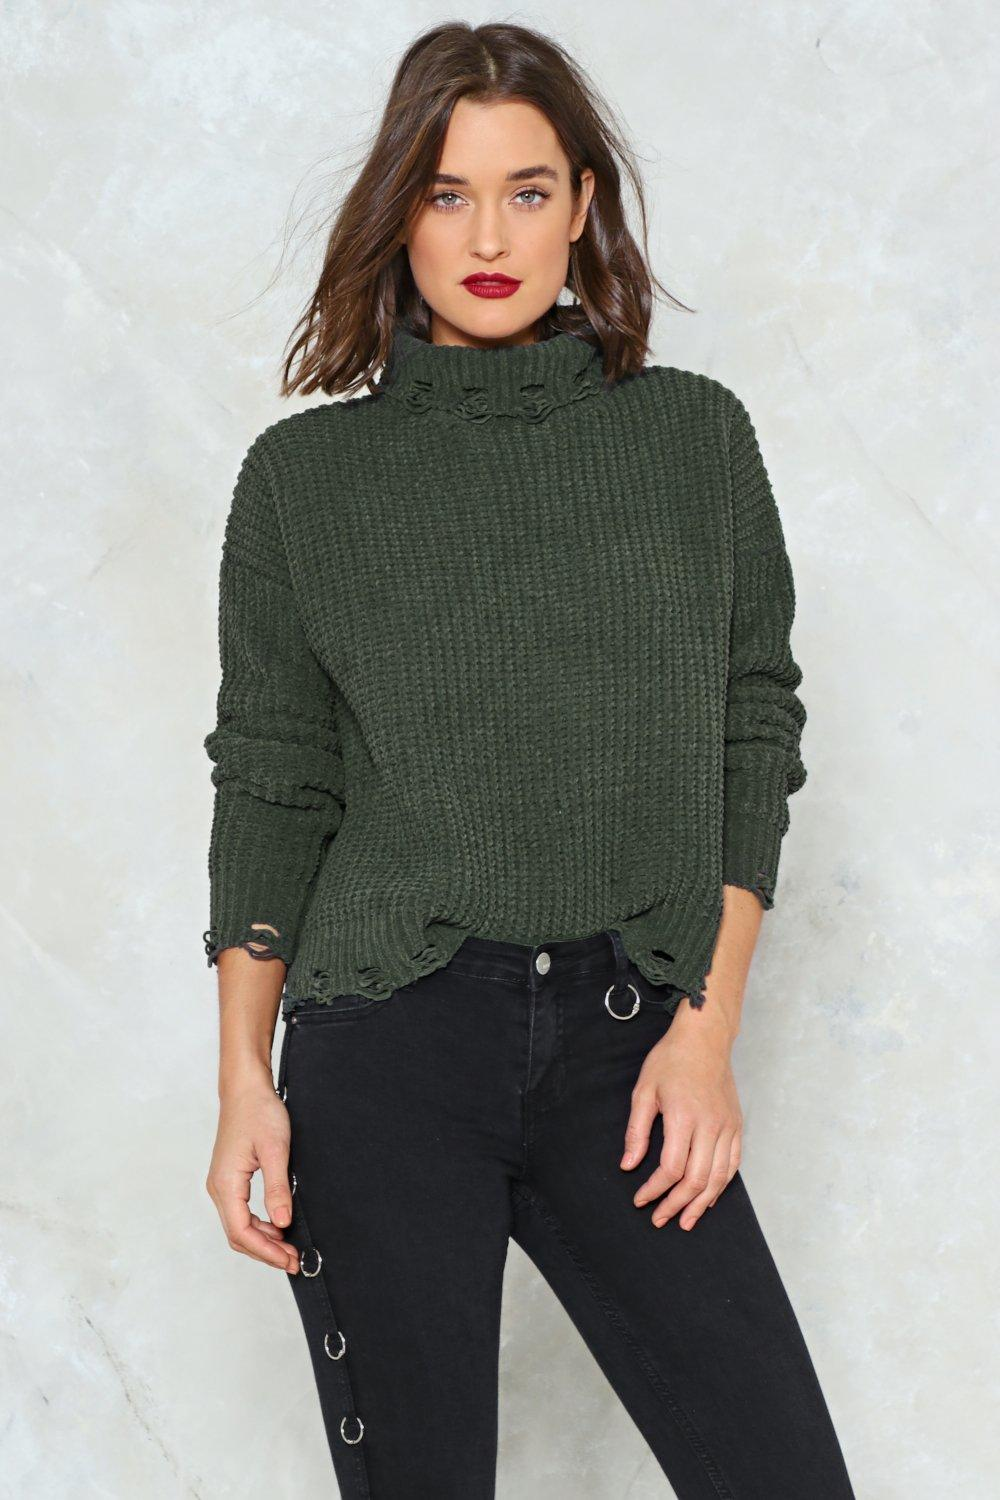 76c265044 Hover to zoom · Womens Green Knit s Worth a Try Chenille Sweater